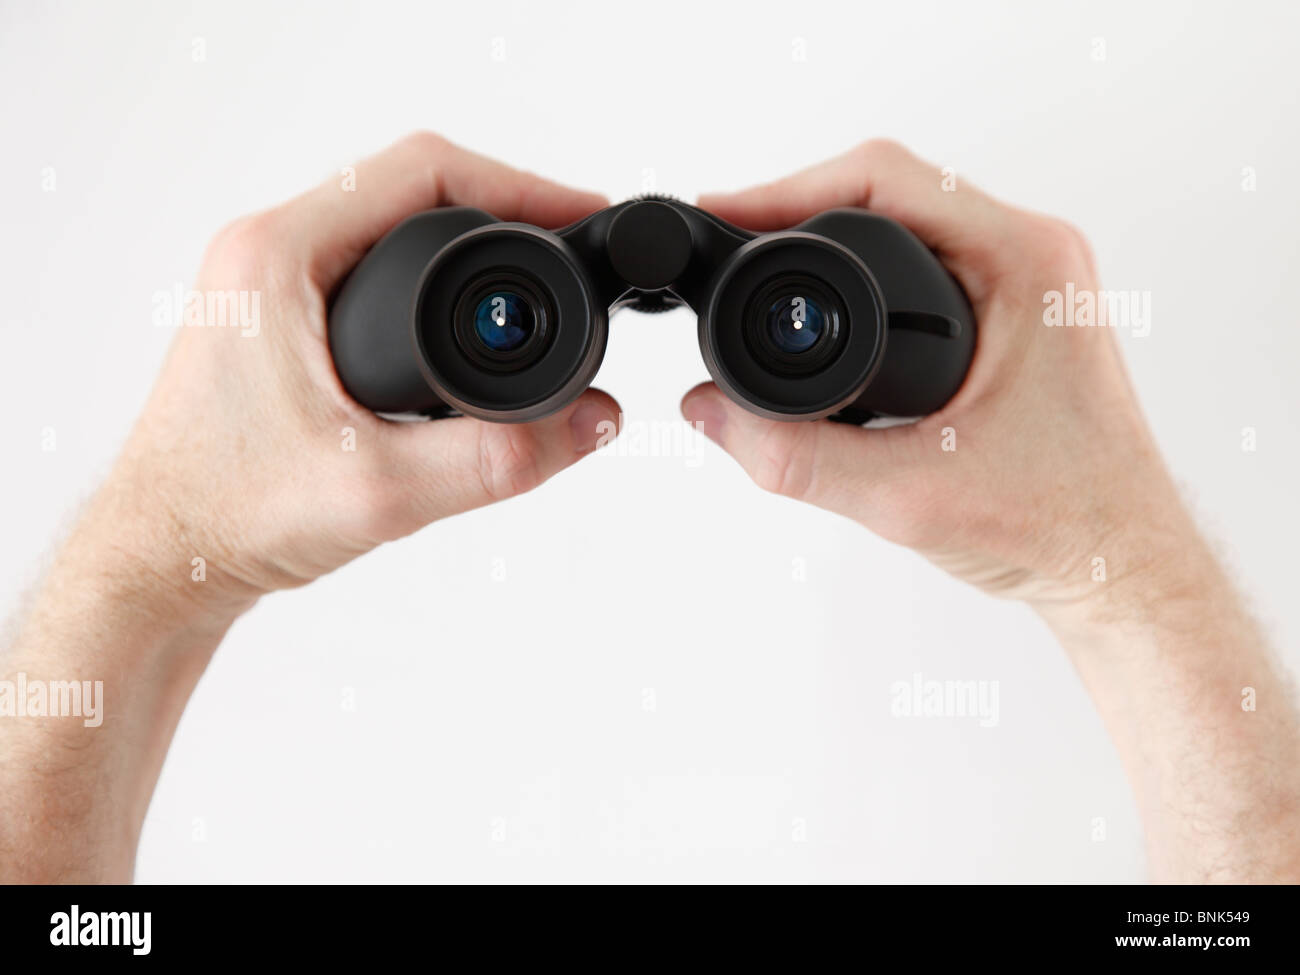 A pair of handheld Binoculars, as seen from the users point of view - Stock Image